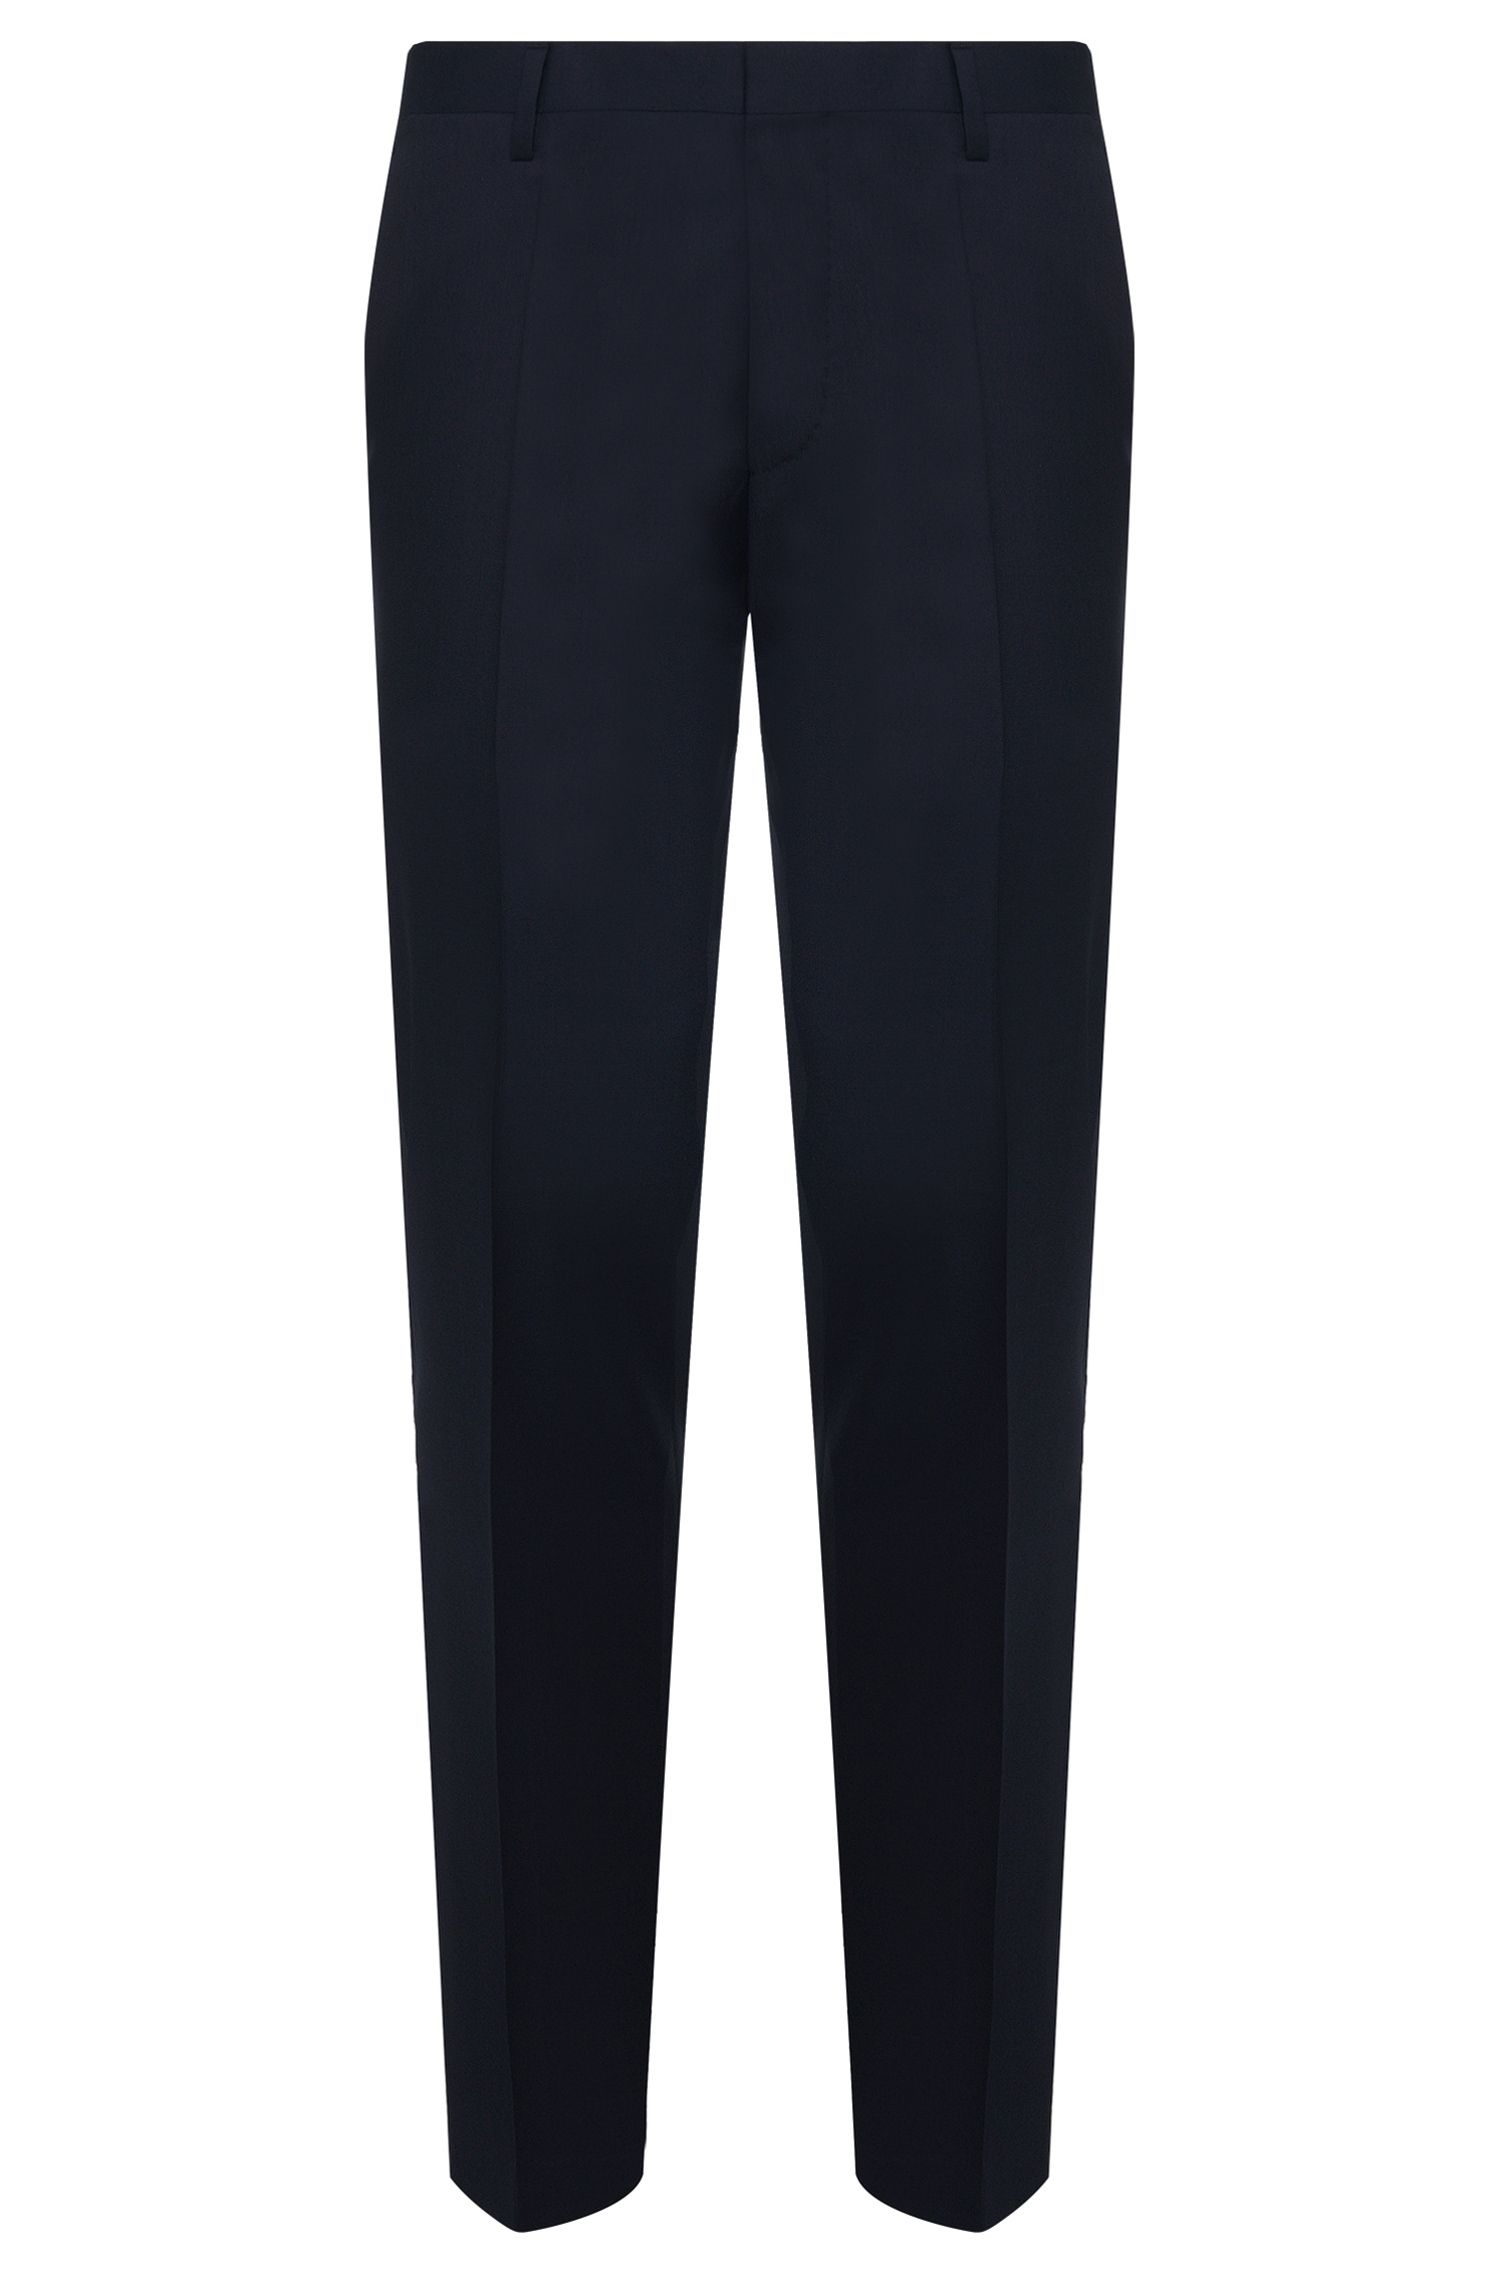 Pantaloni slim fit in pura lana vergine